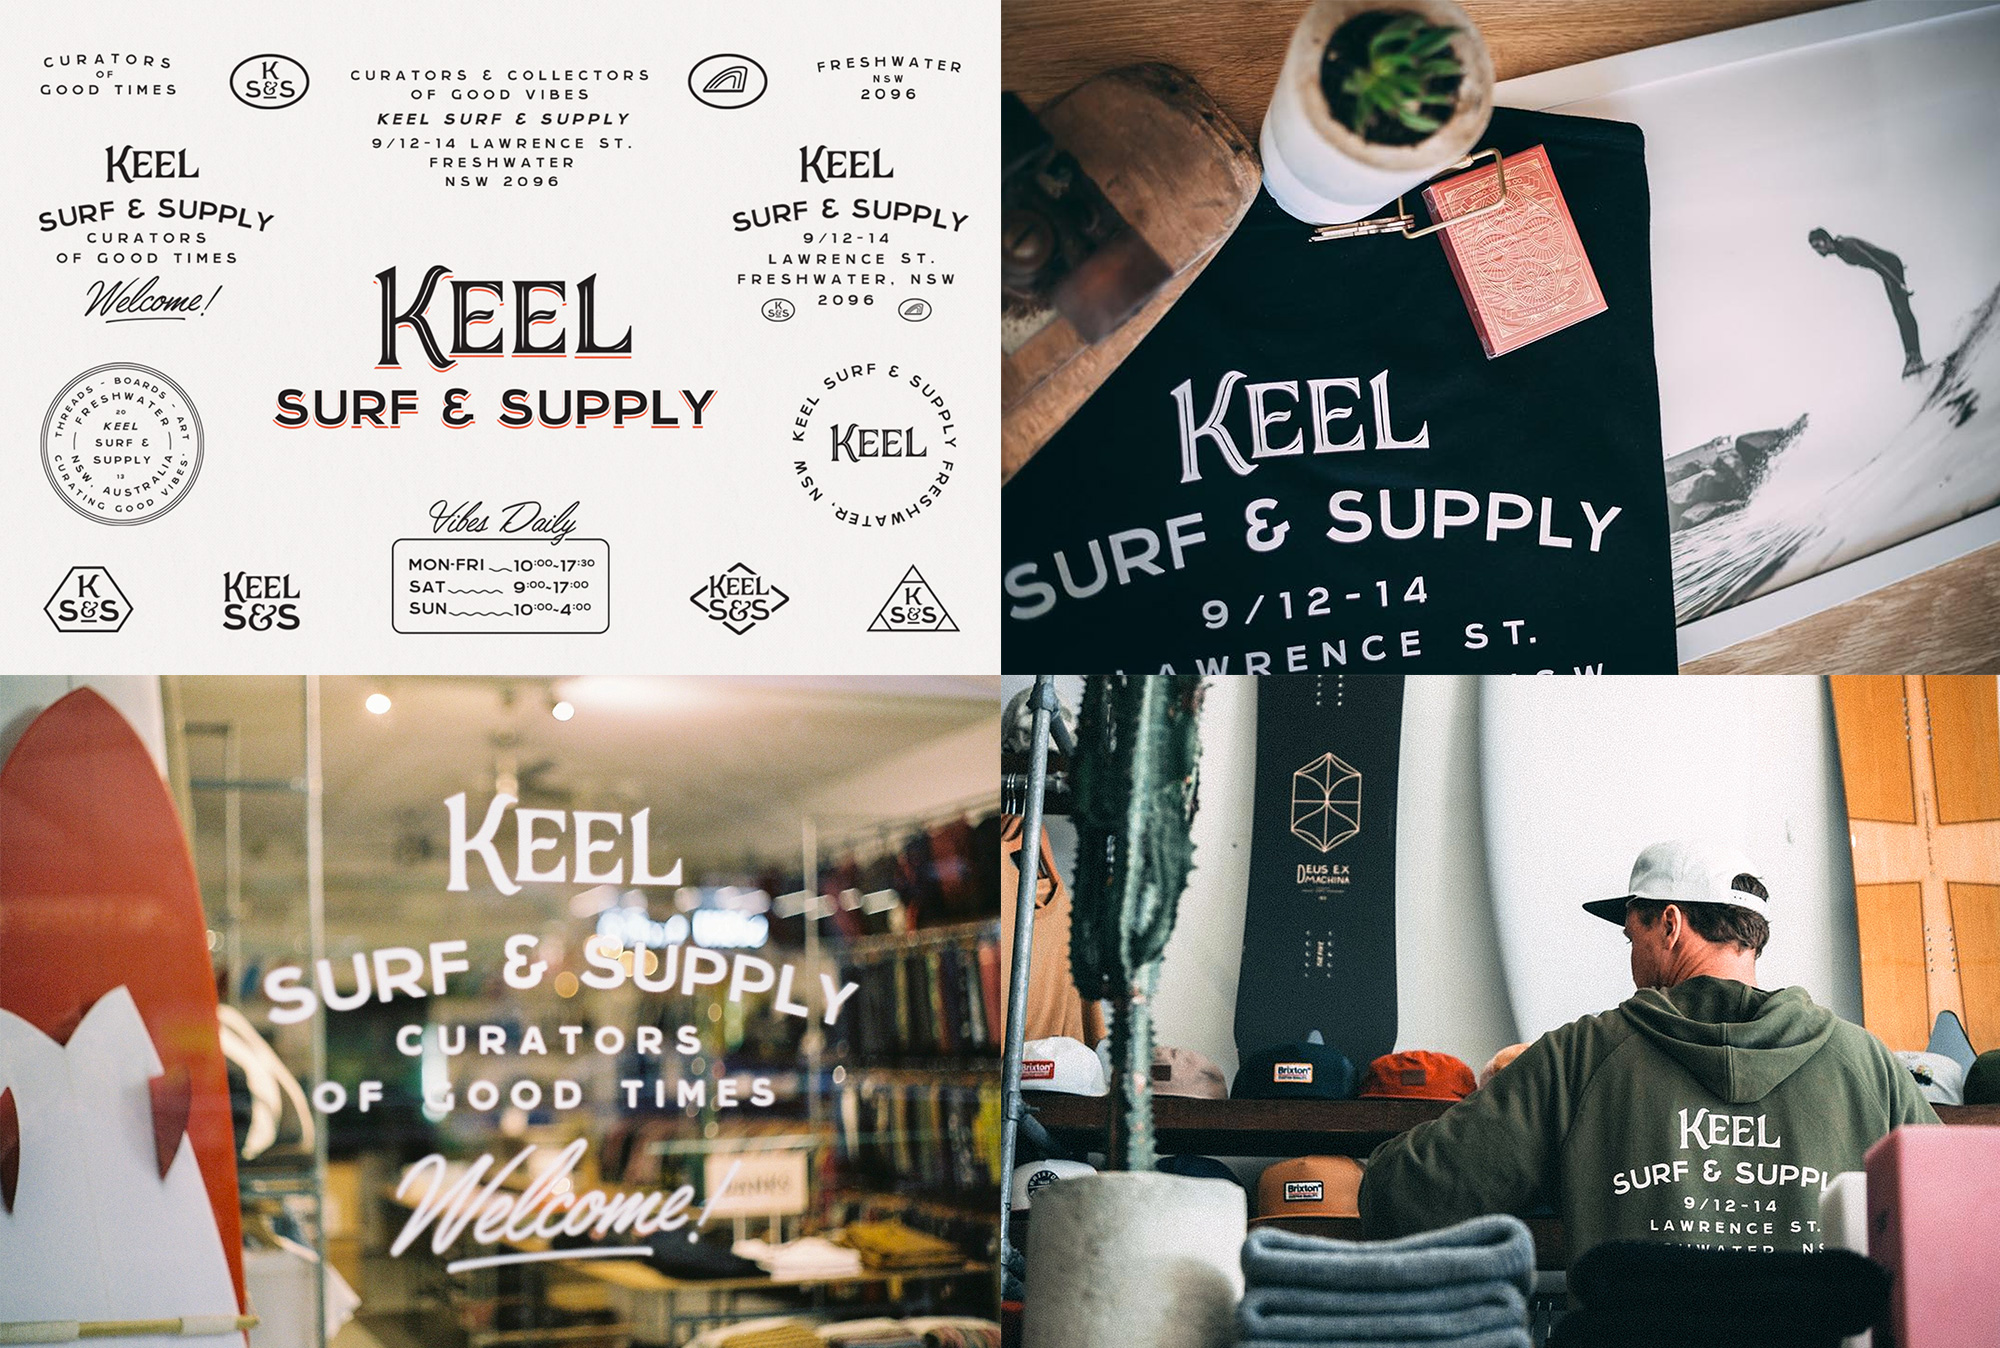 Keel Surf & Supply by Chaptr